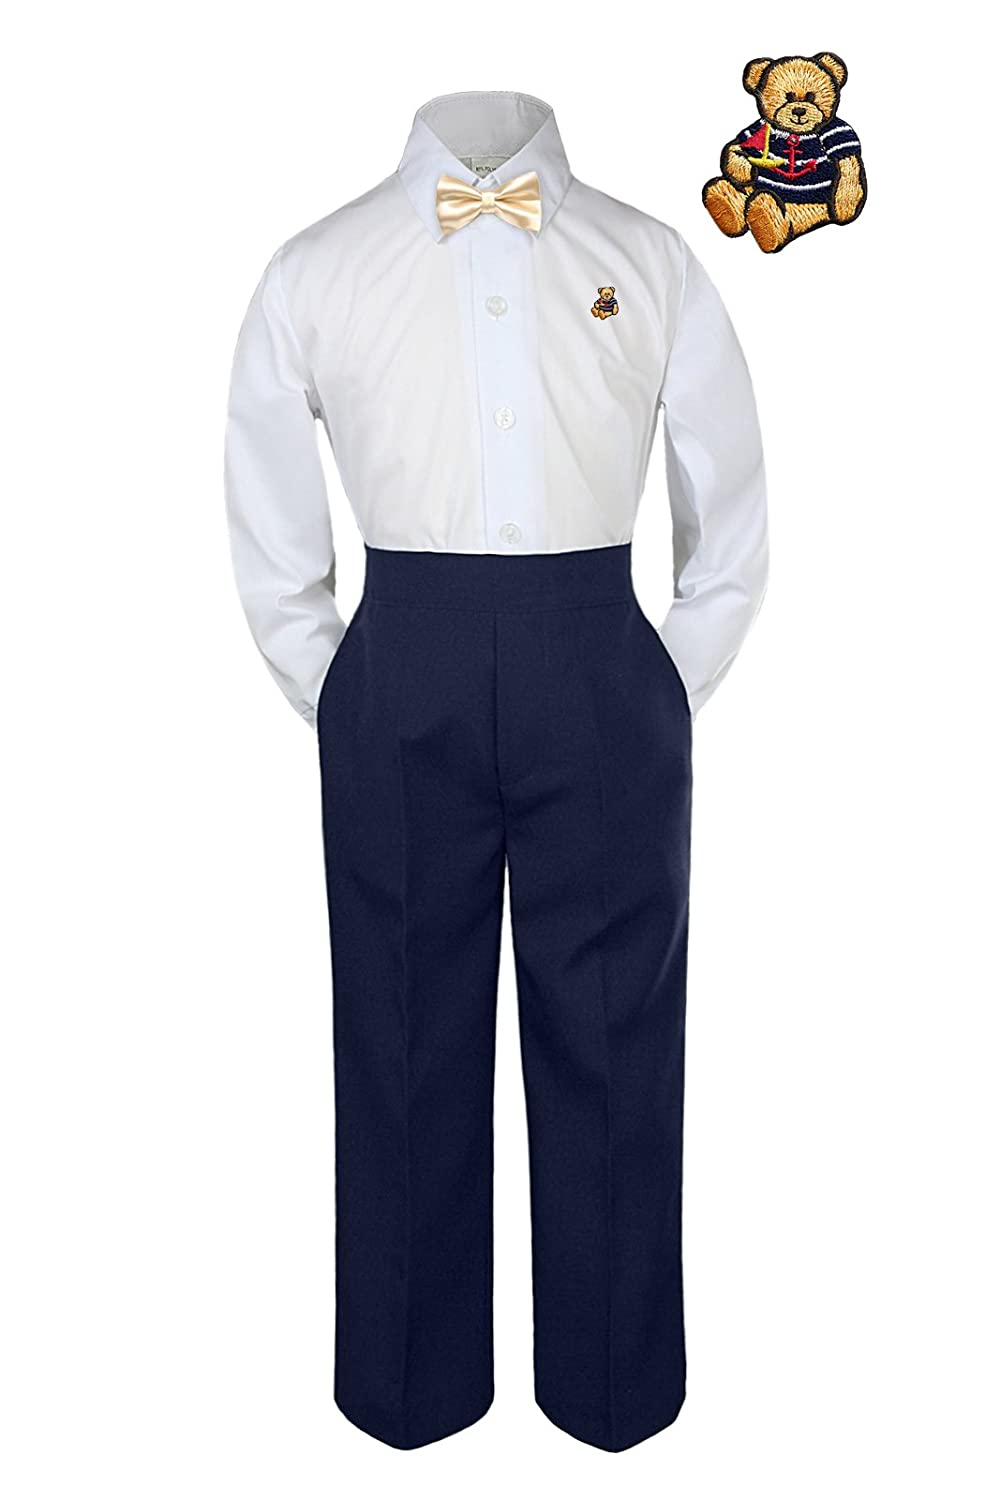 Unotux 3pc Formal Baby Toddler Boys Champagne Bow Tie Navy Pants Bear Suit S-7 M